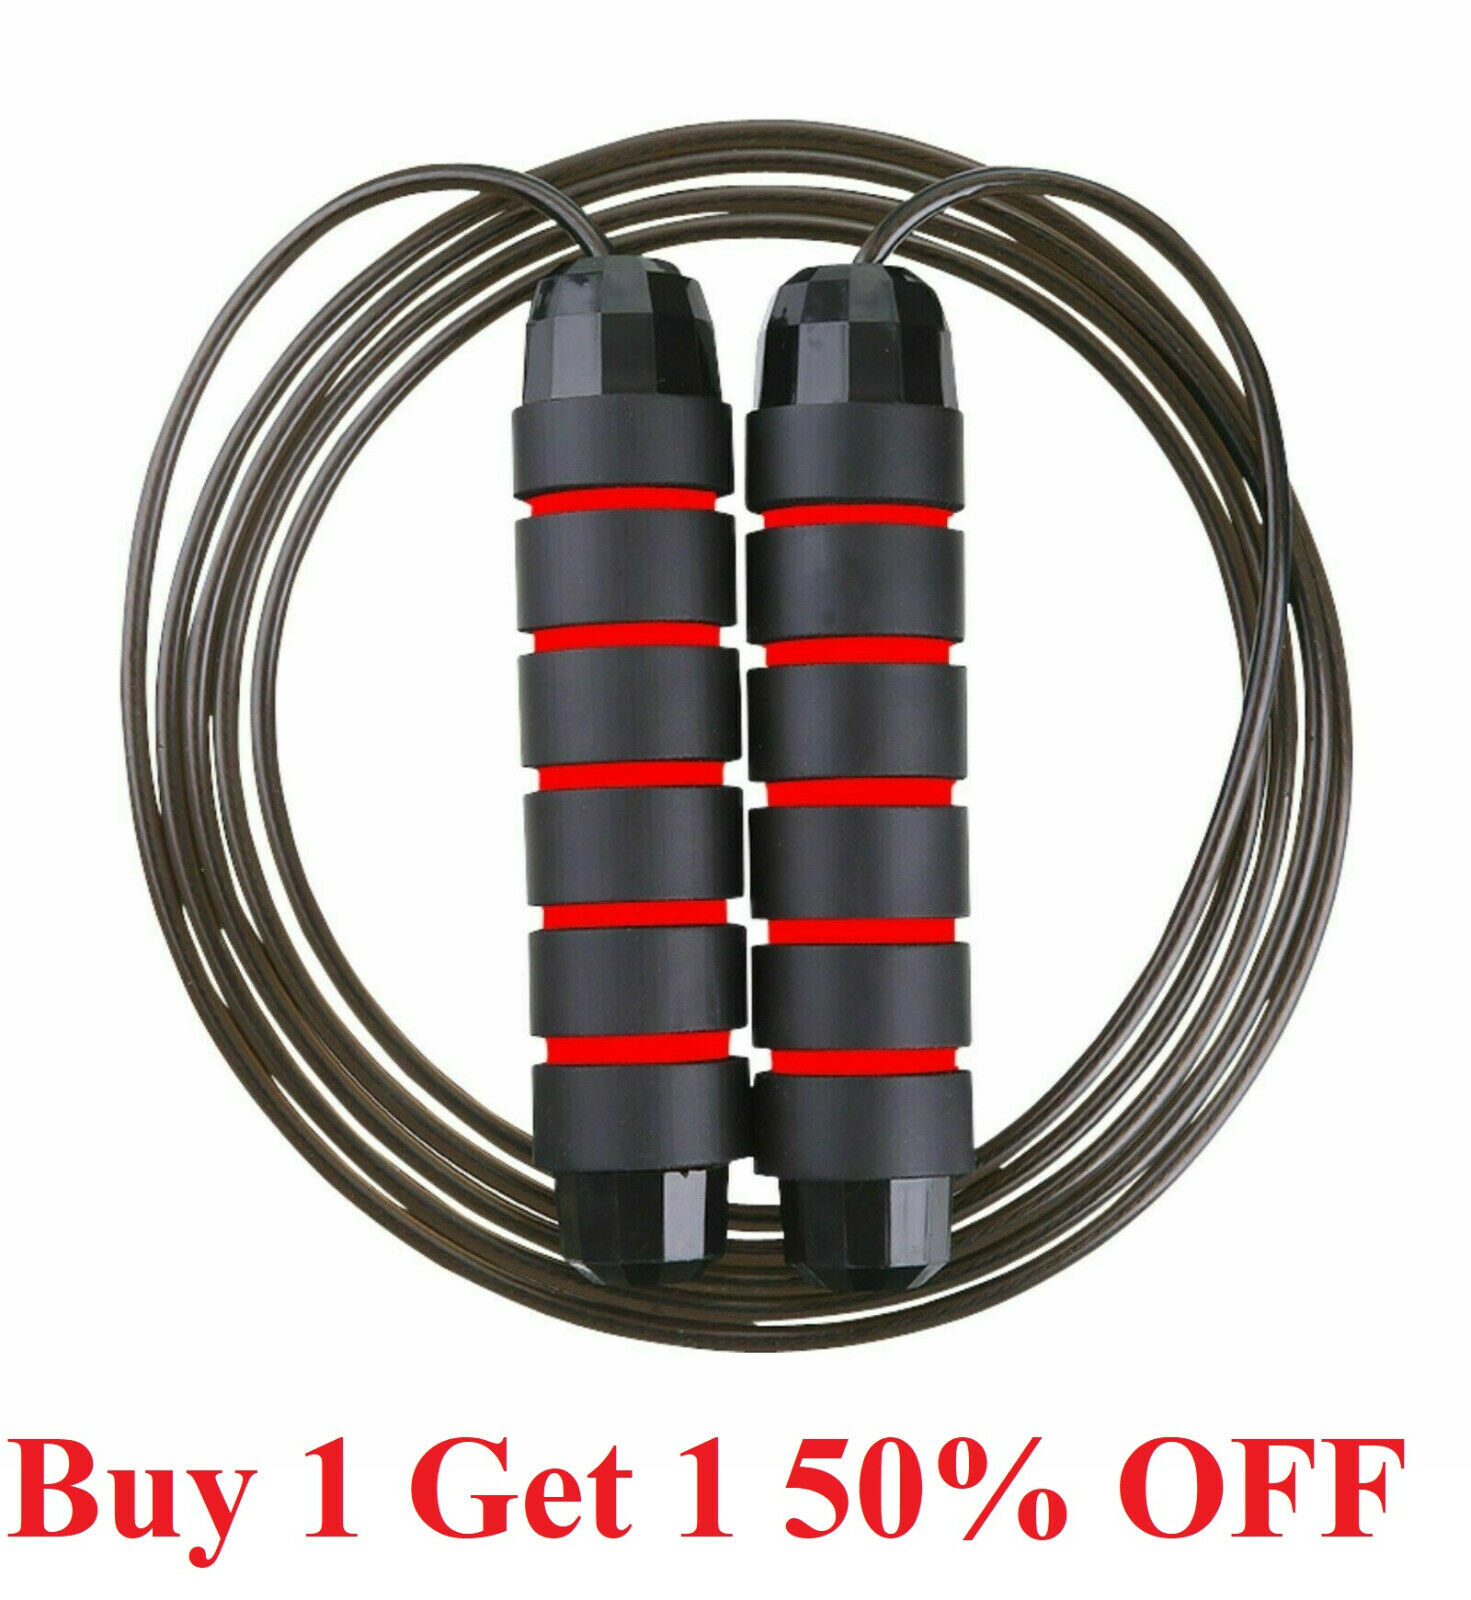 Jump Rope Gym Aerobic Exercise Boxing Skipping  Adjustable Bearing Speed Fitness Fitness Equipment & Gear